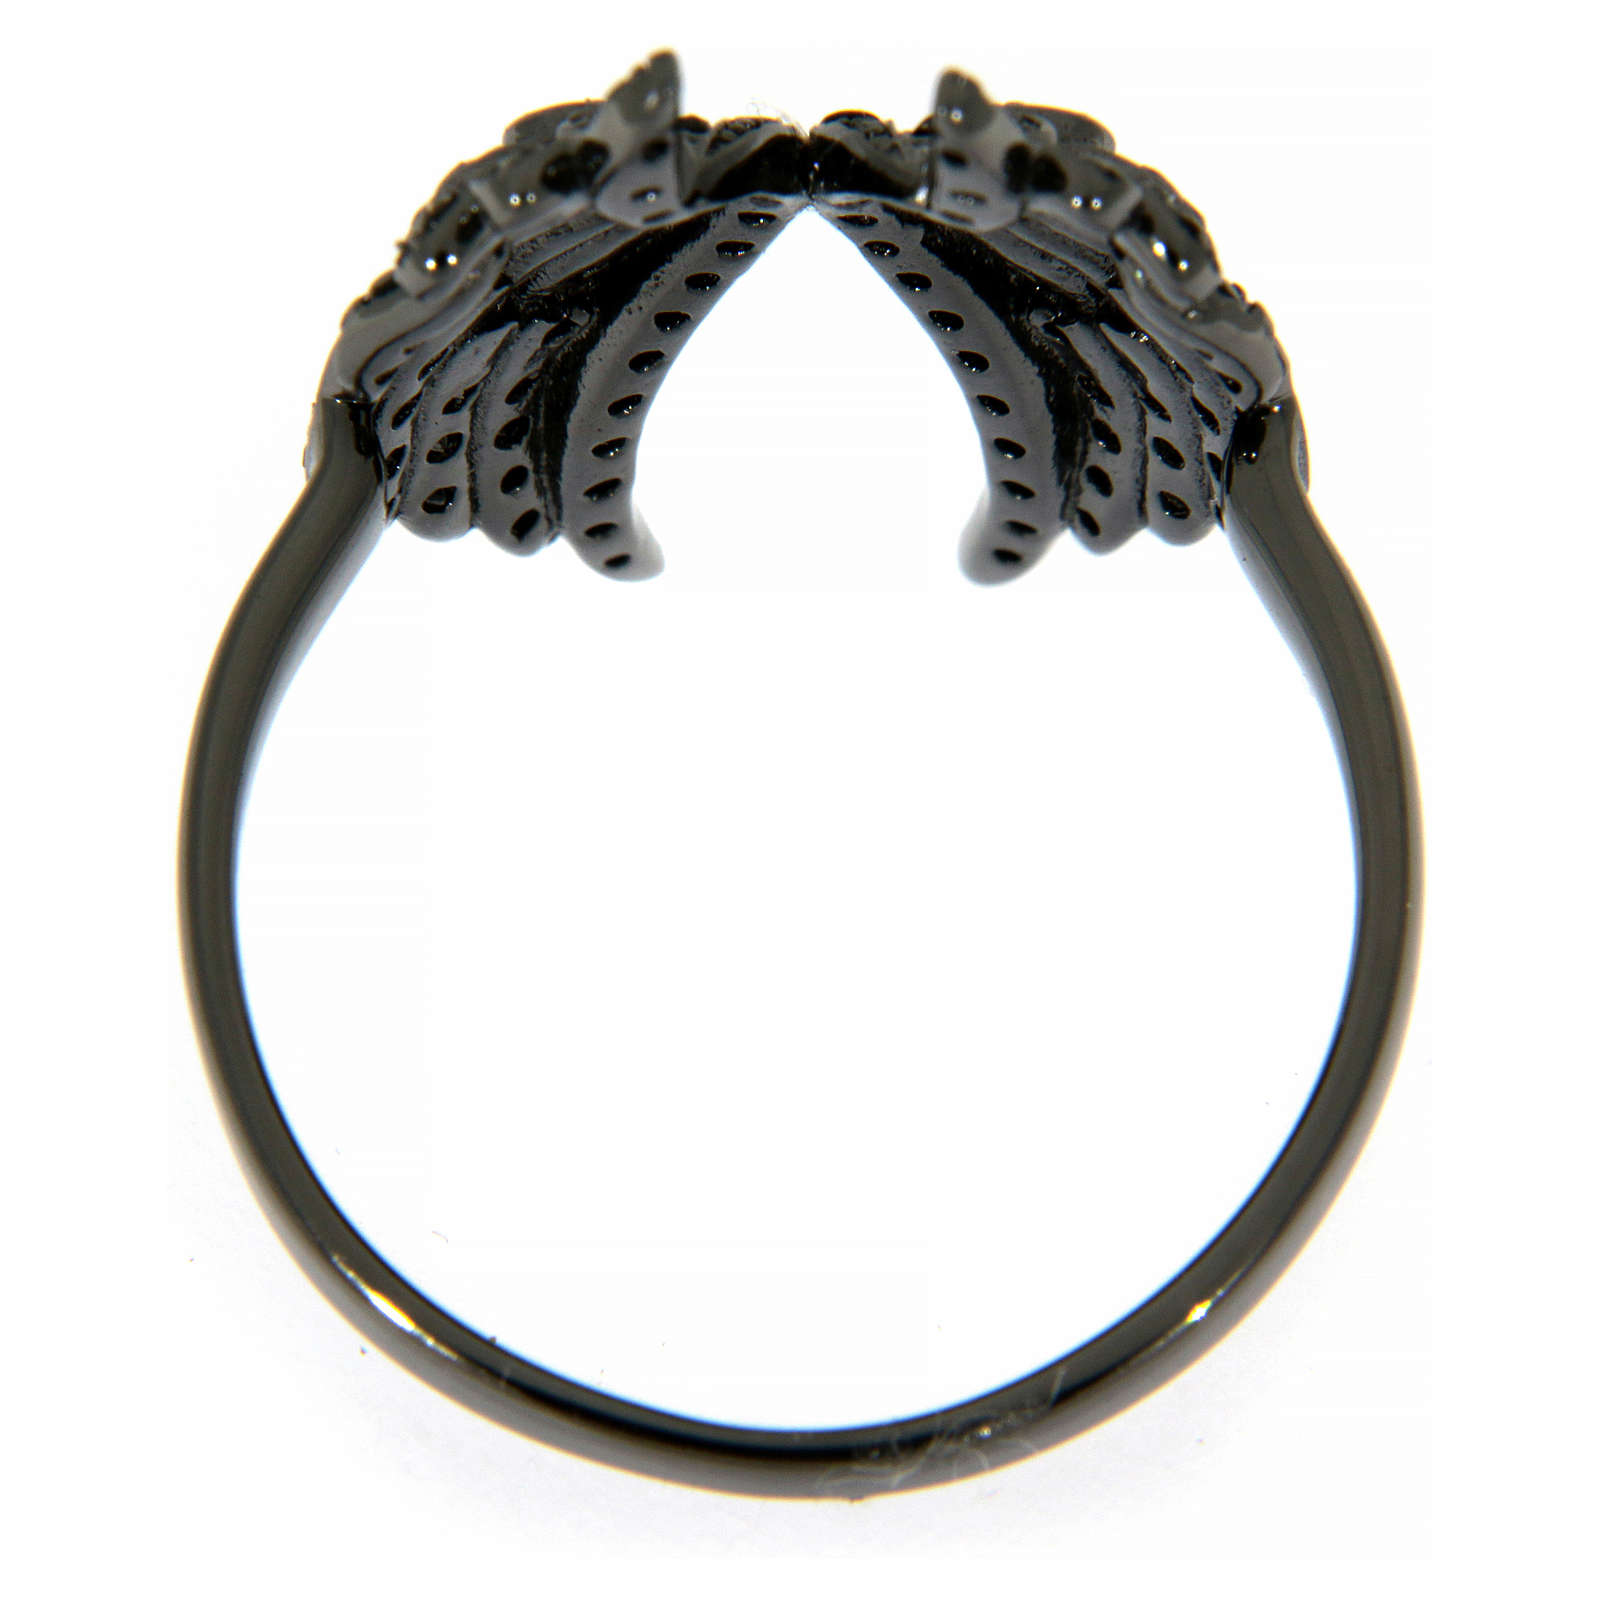 AMEN ring in 925 silver with rhodium-plated black finishing, angel wings and black rhinestones 3